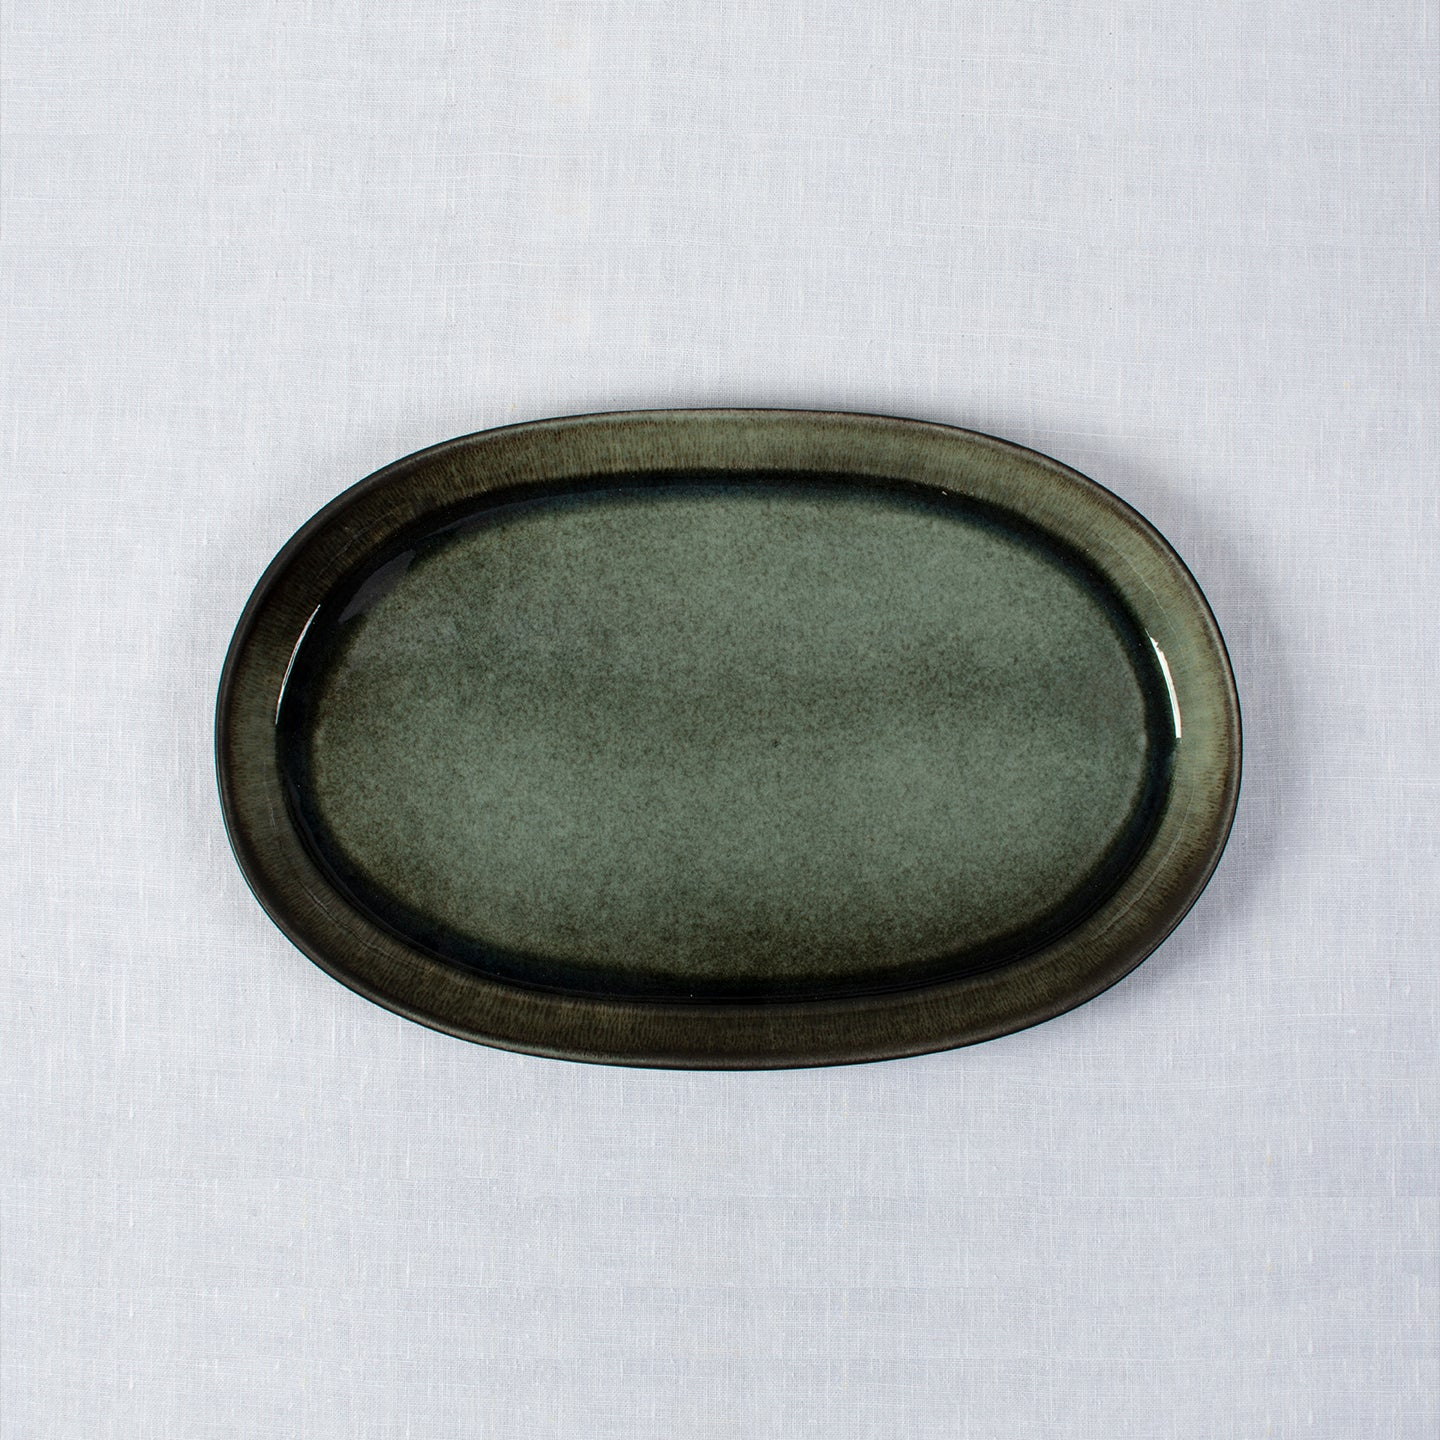 Jars Oval Sharing Platter XL / 39.5x25.5cm / Samoa / Black